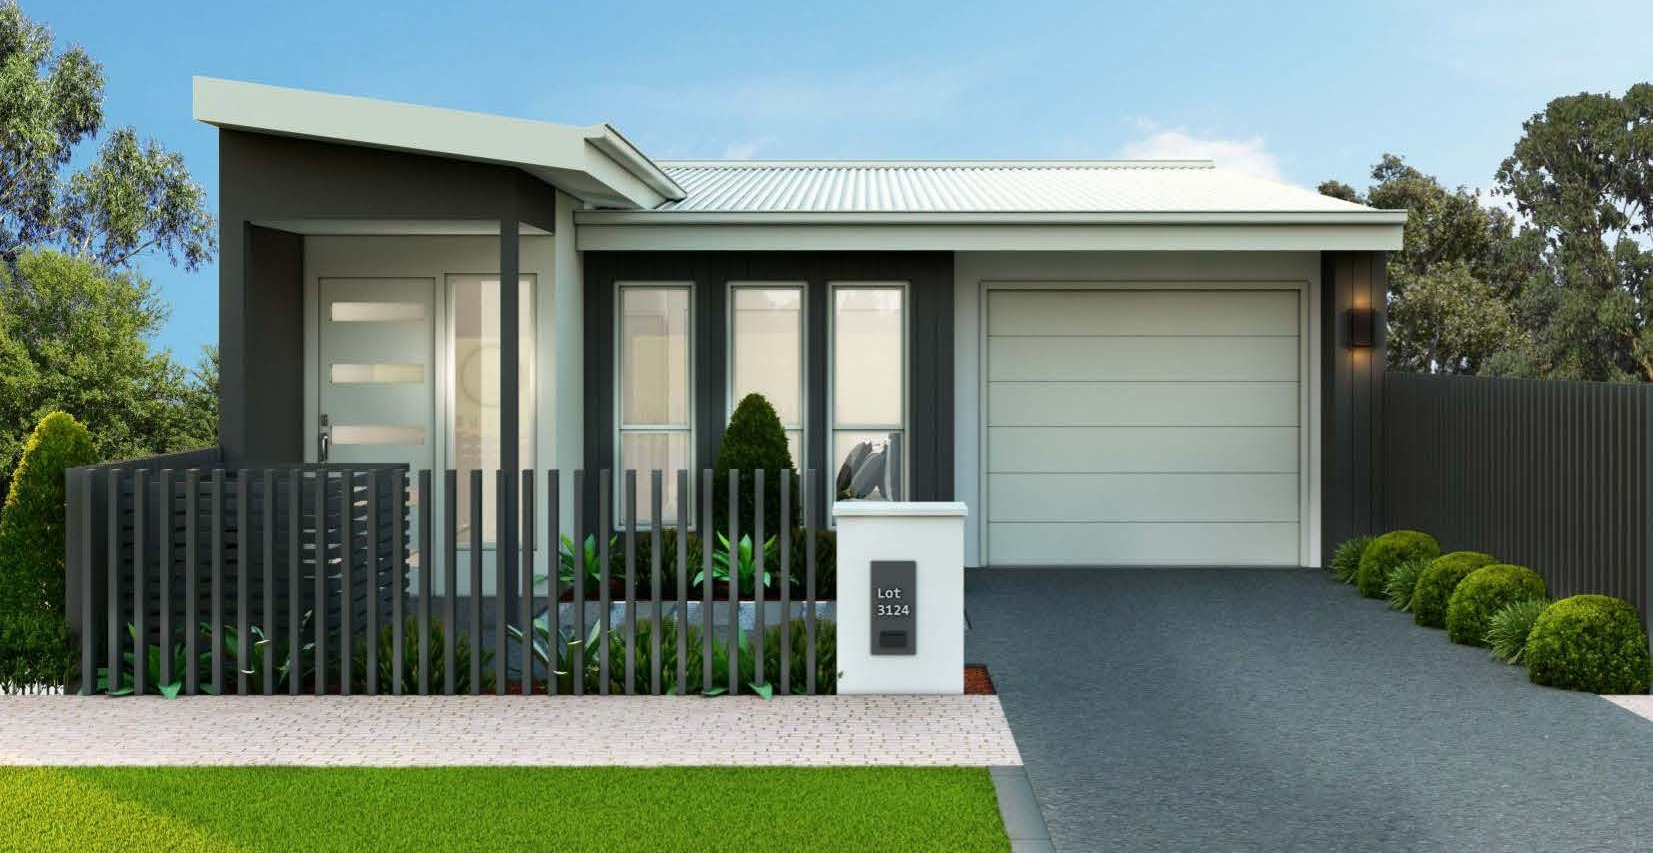 Lot 62 Sanctum Estate, Lawnton North Brisbane 4501